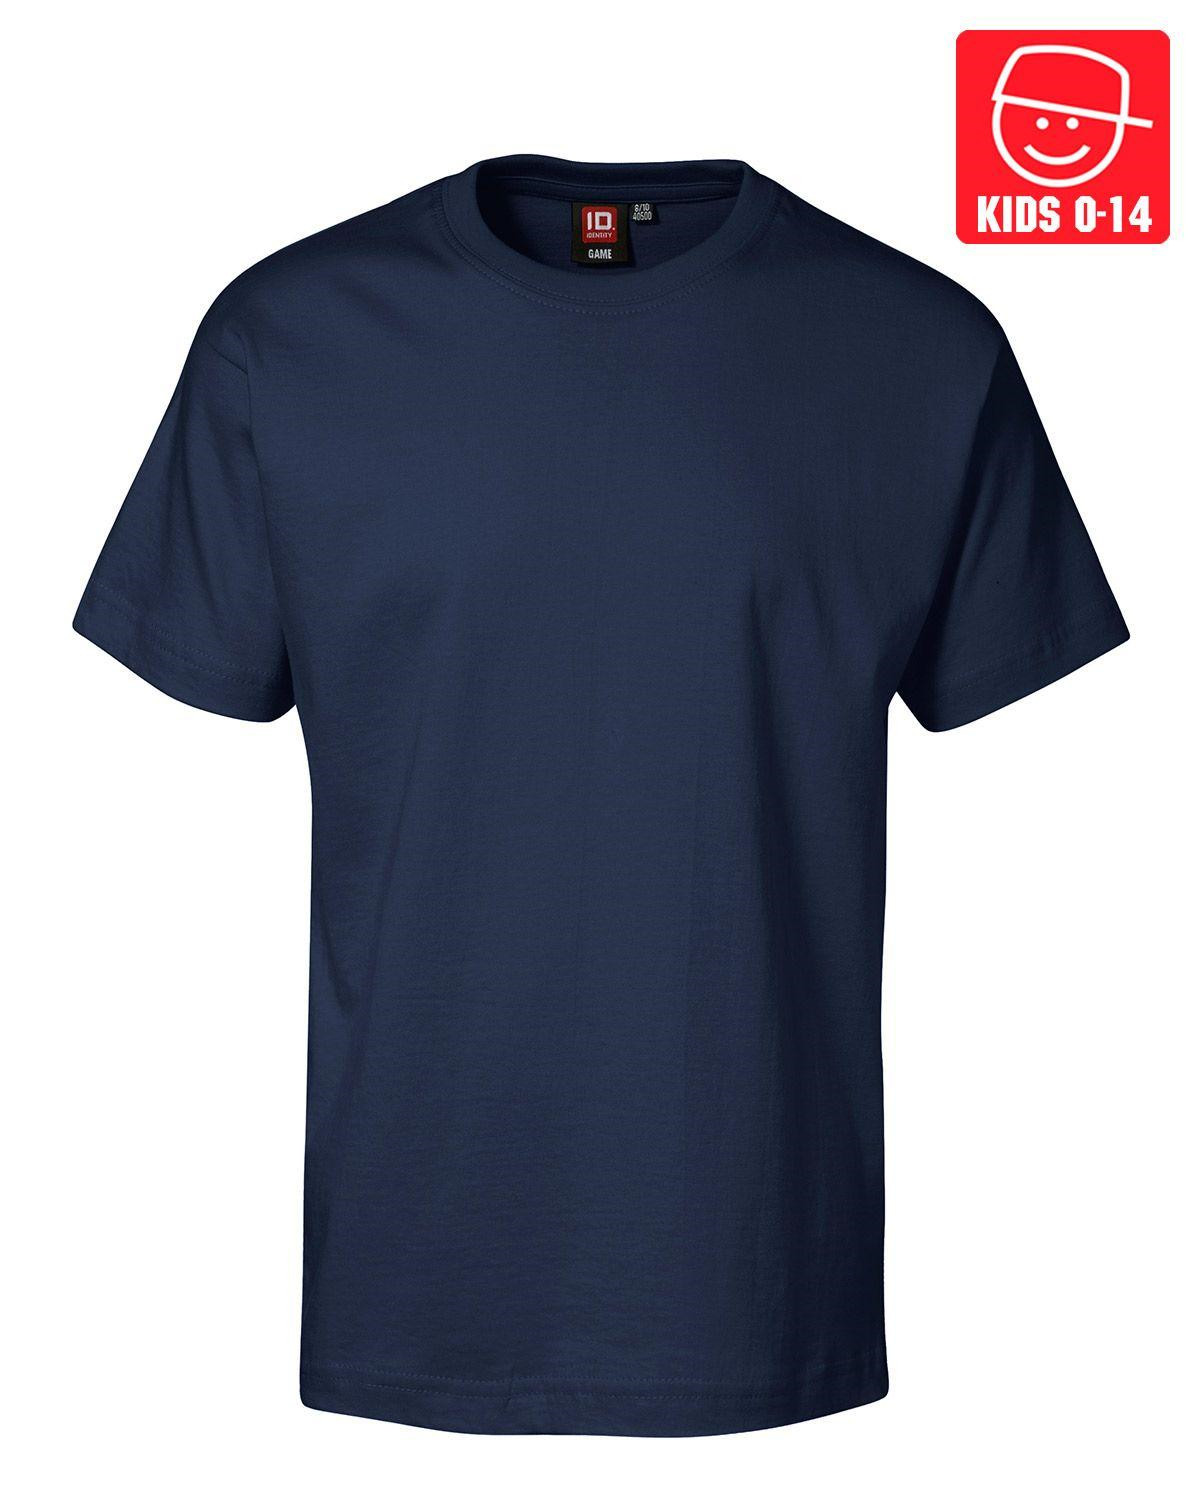 Image of   ID T-shirts (Navy, 158)